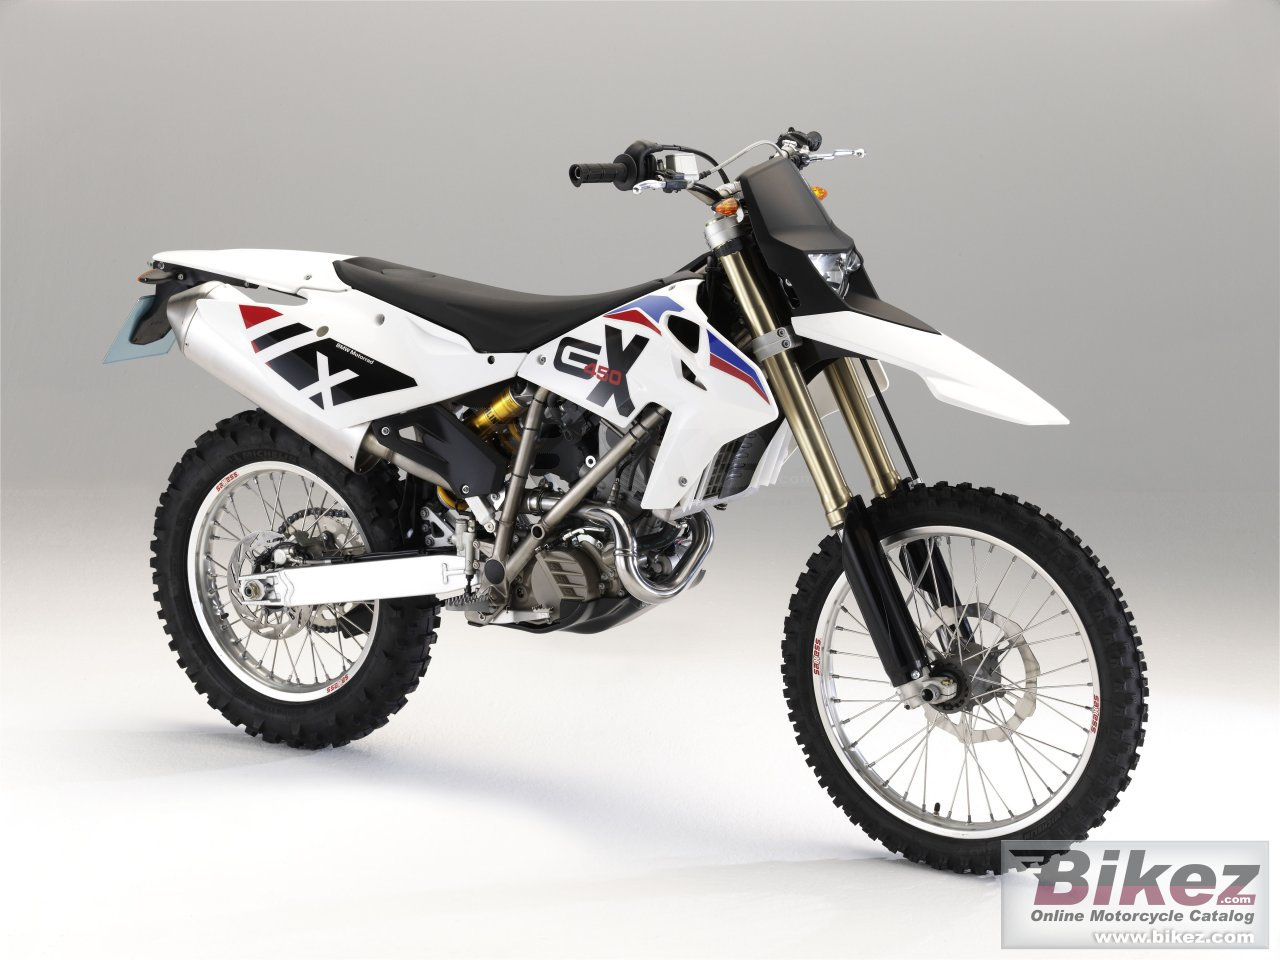 Big BMW g 450 x picture and wallpaper from Bikez.com